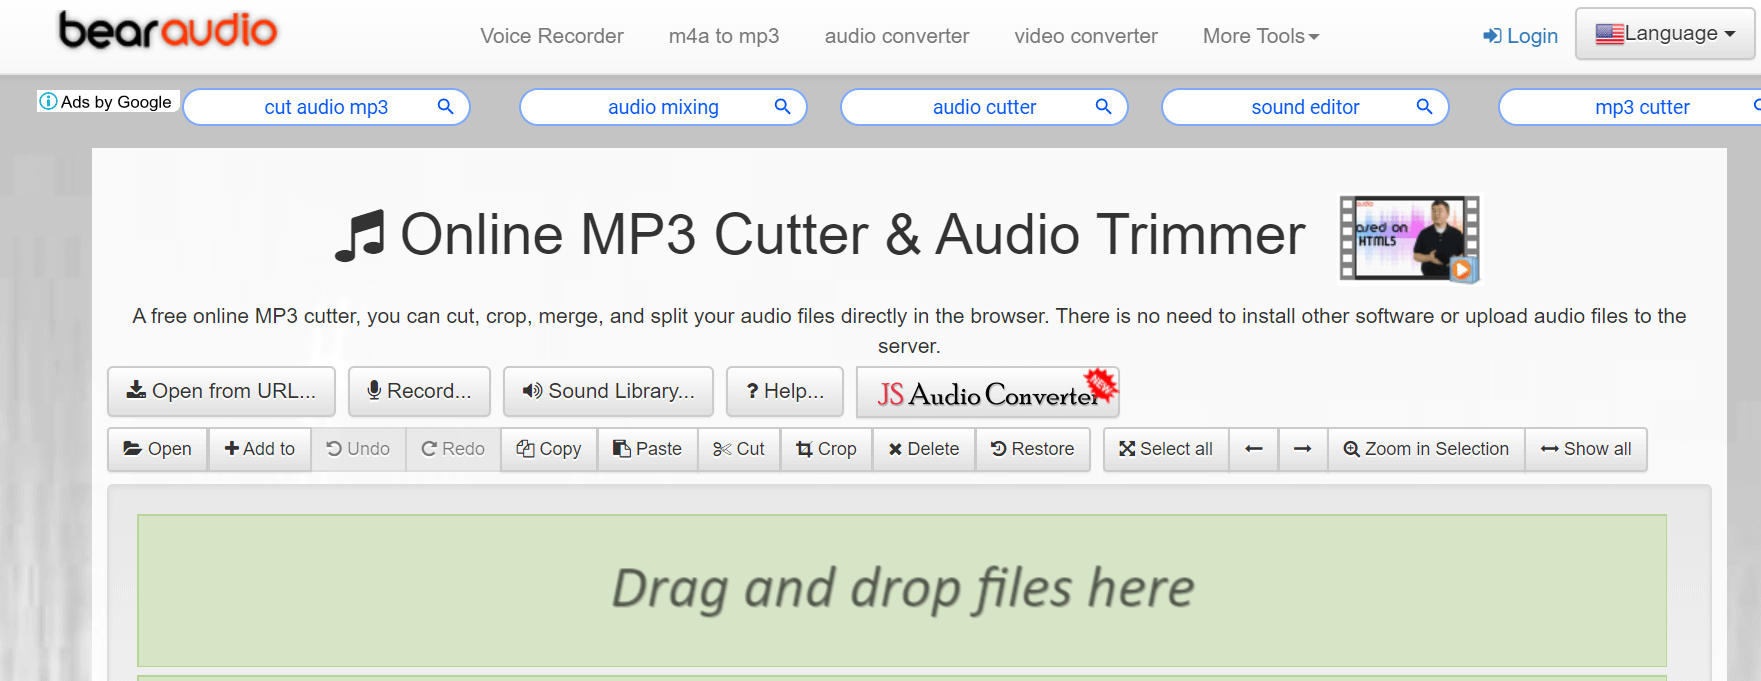 Bear Audio Online MP3 Cutter and Audio Trimmer